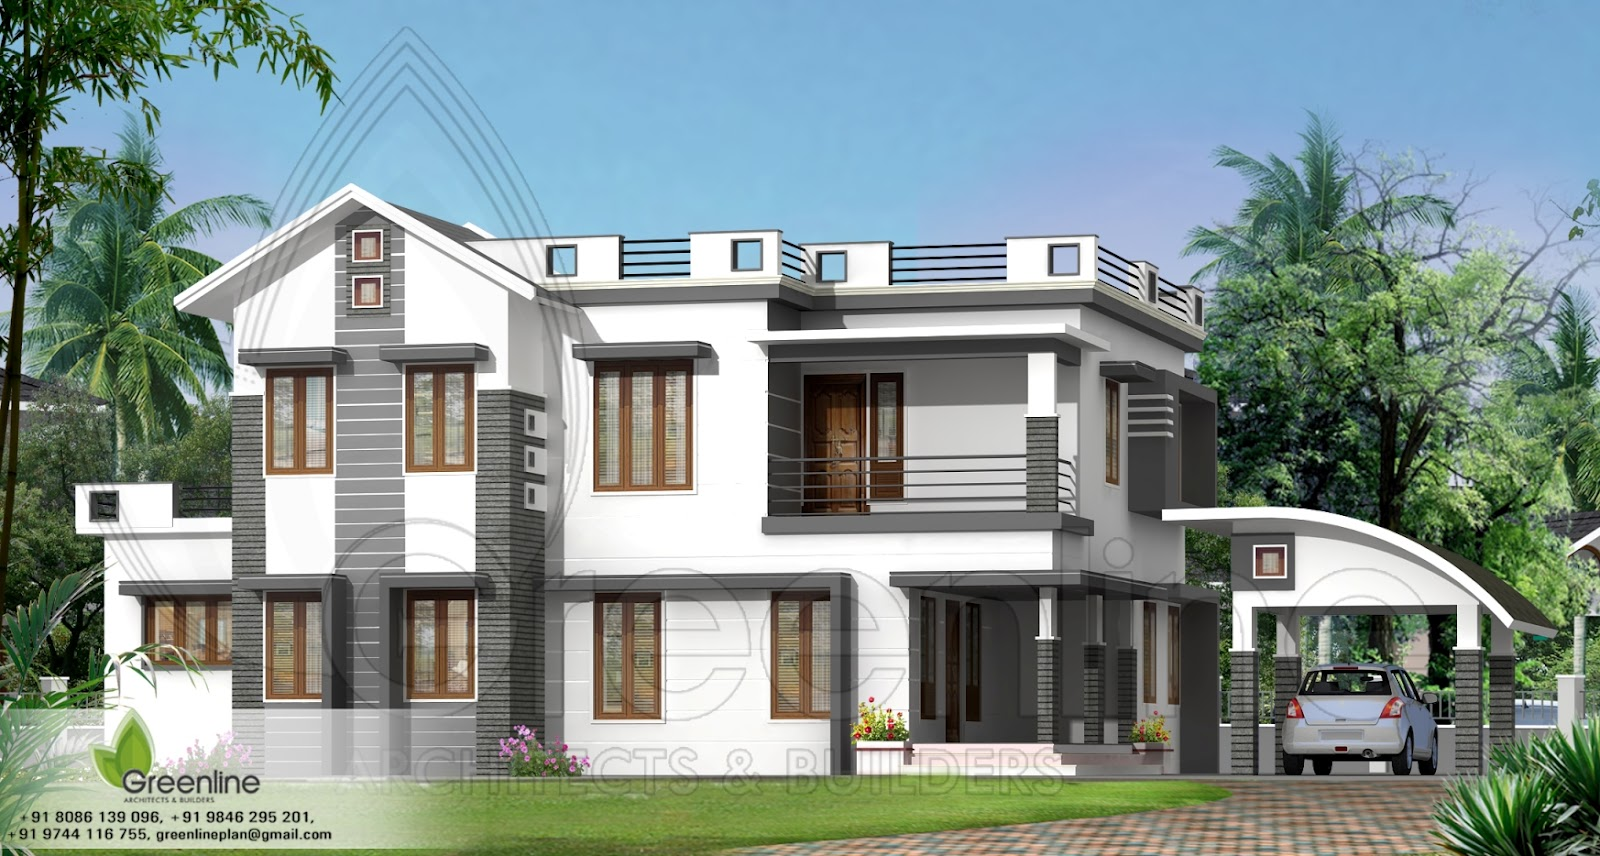 3d wallpaper for home wallpapersafari - Exterior designs of houses in india ...